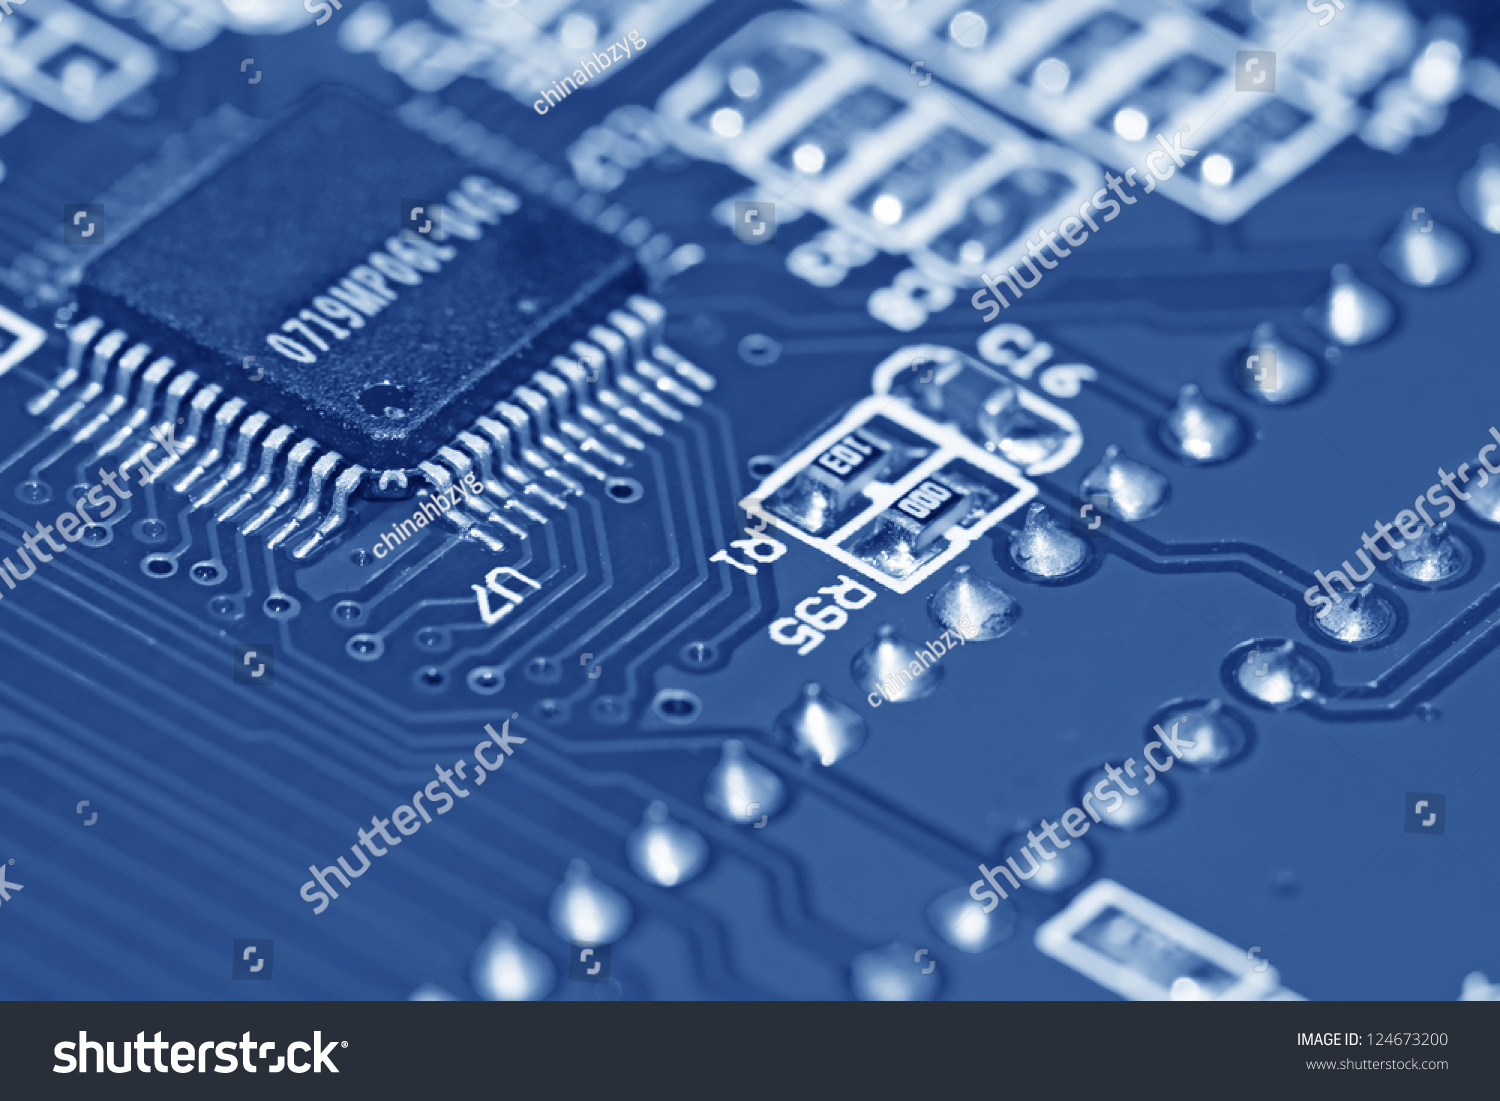 Closeup Printed Circuit Boards Universal Application Stock Photo Stockfoto Board Pcb Used In Industrial Electronic Of The Current High Tech Products